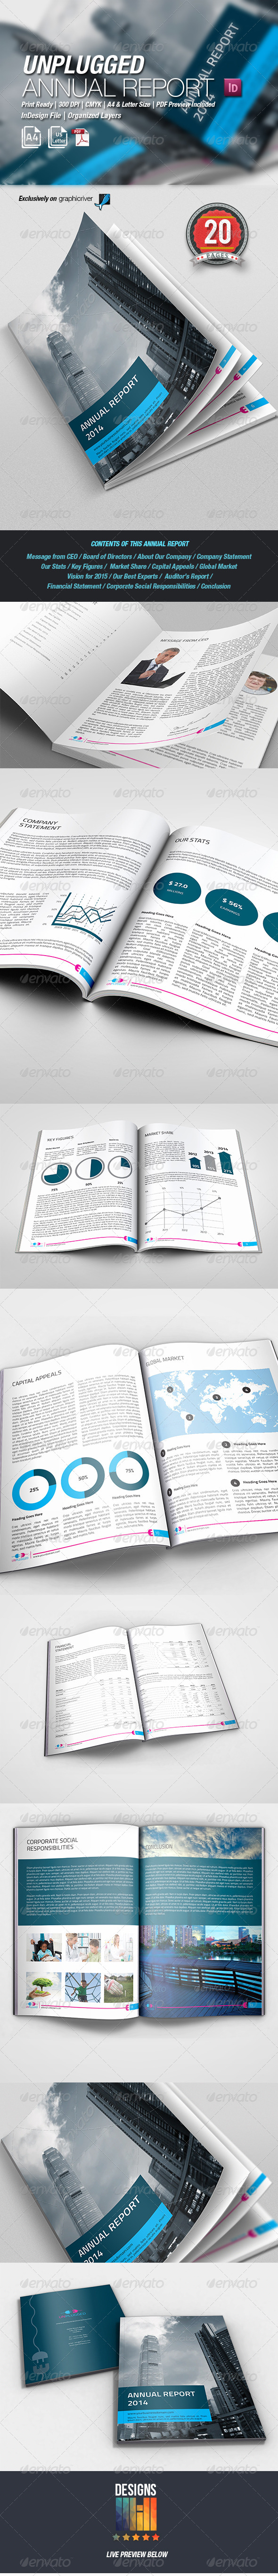 GraphicRiver UnPlugged Annual Report 8624587